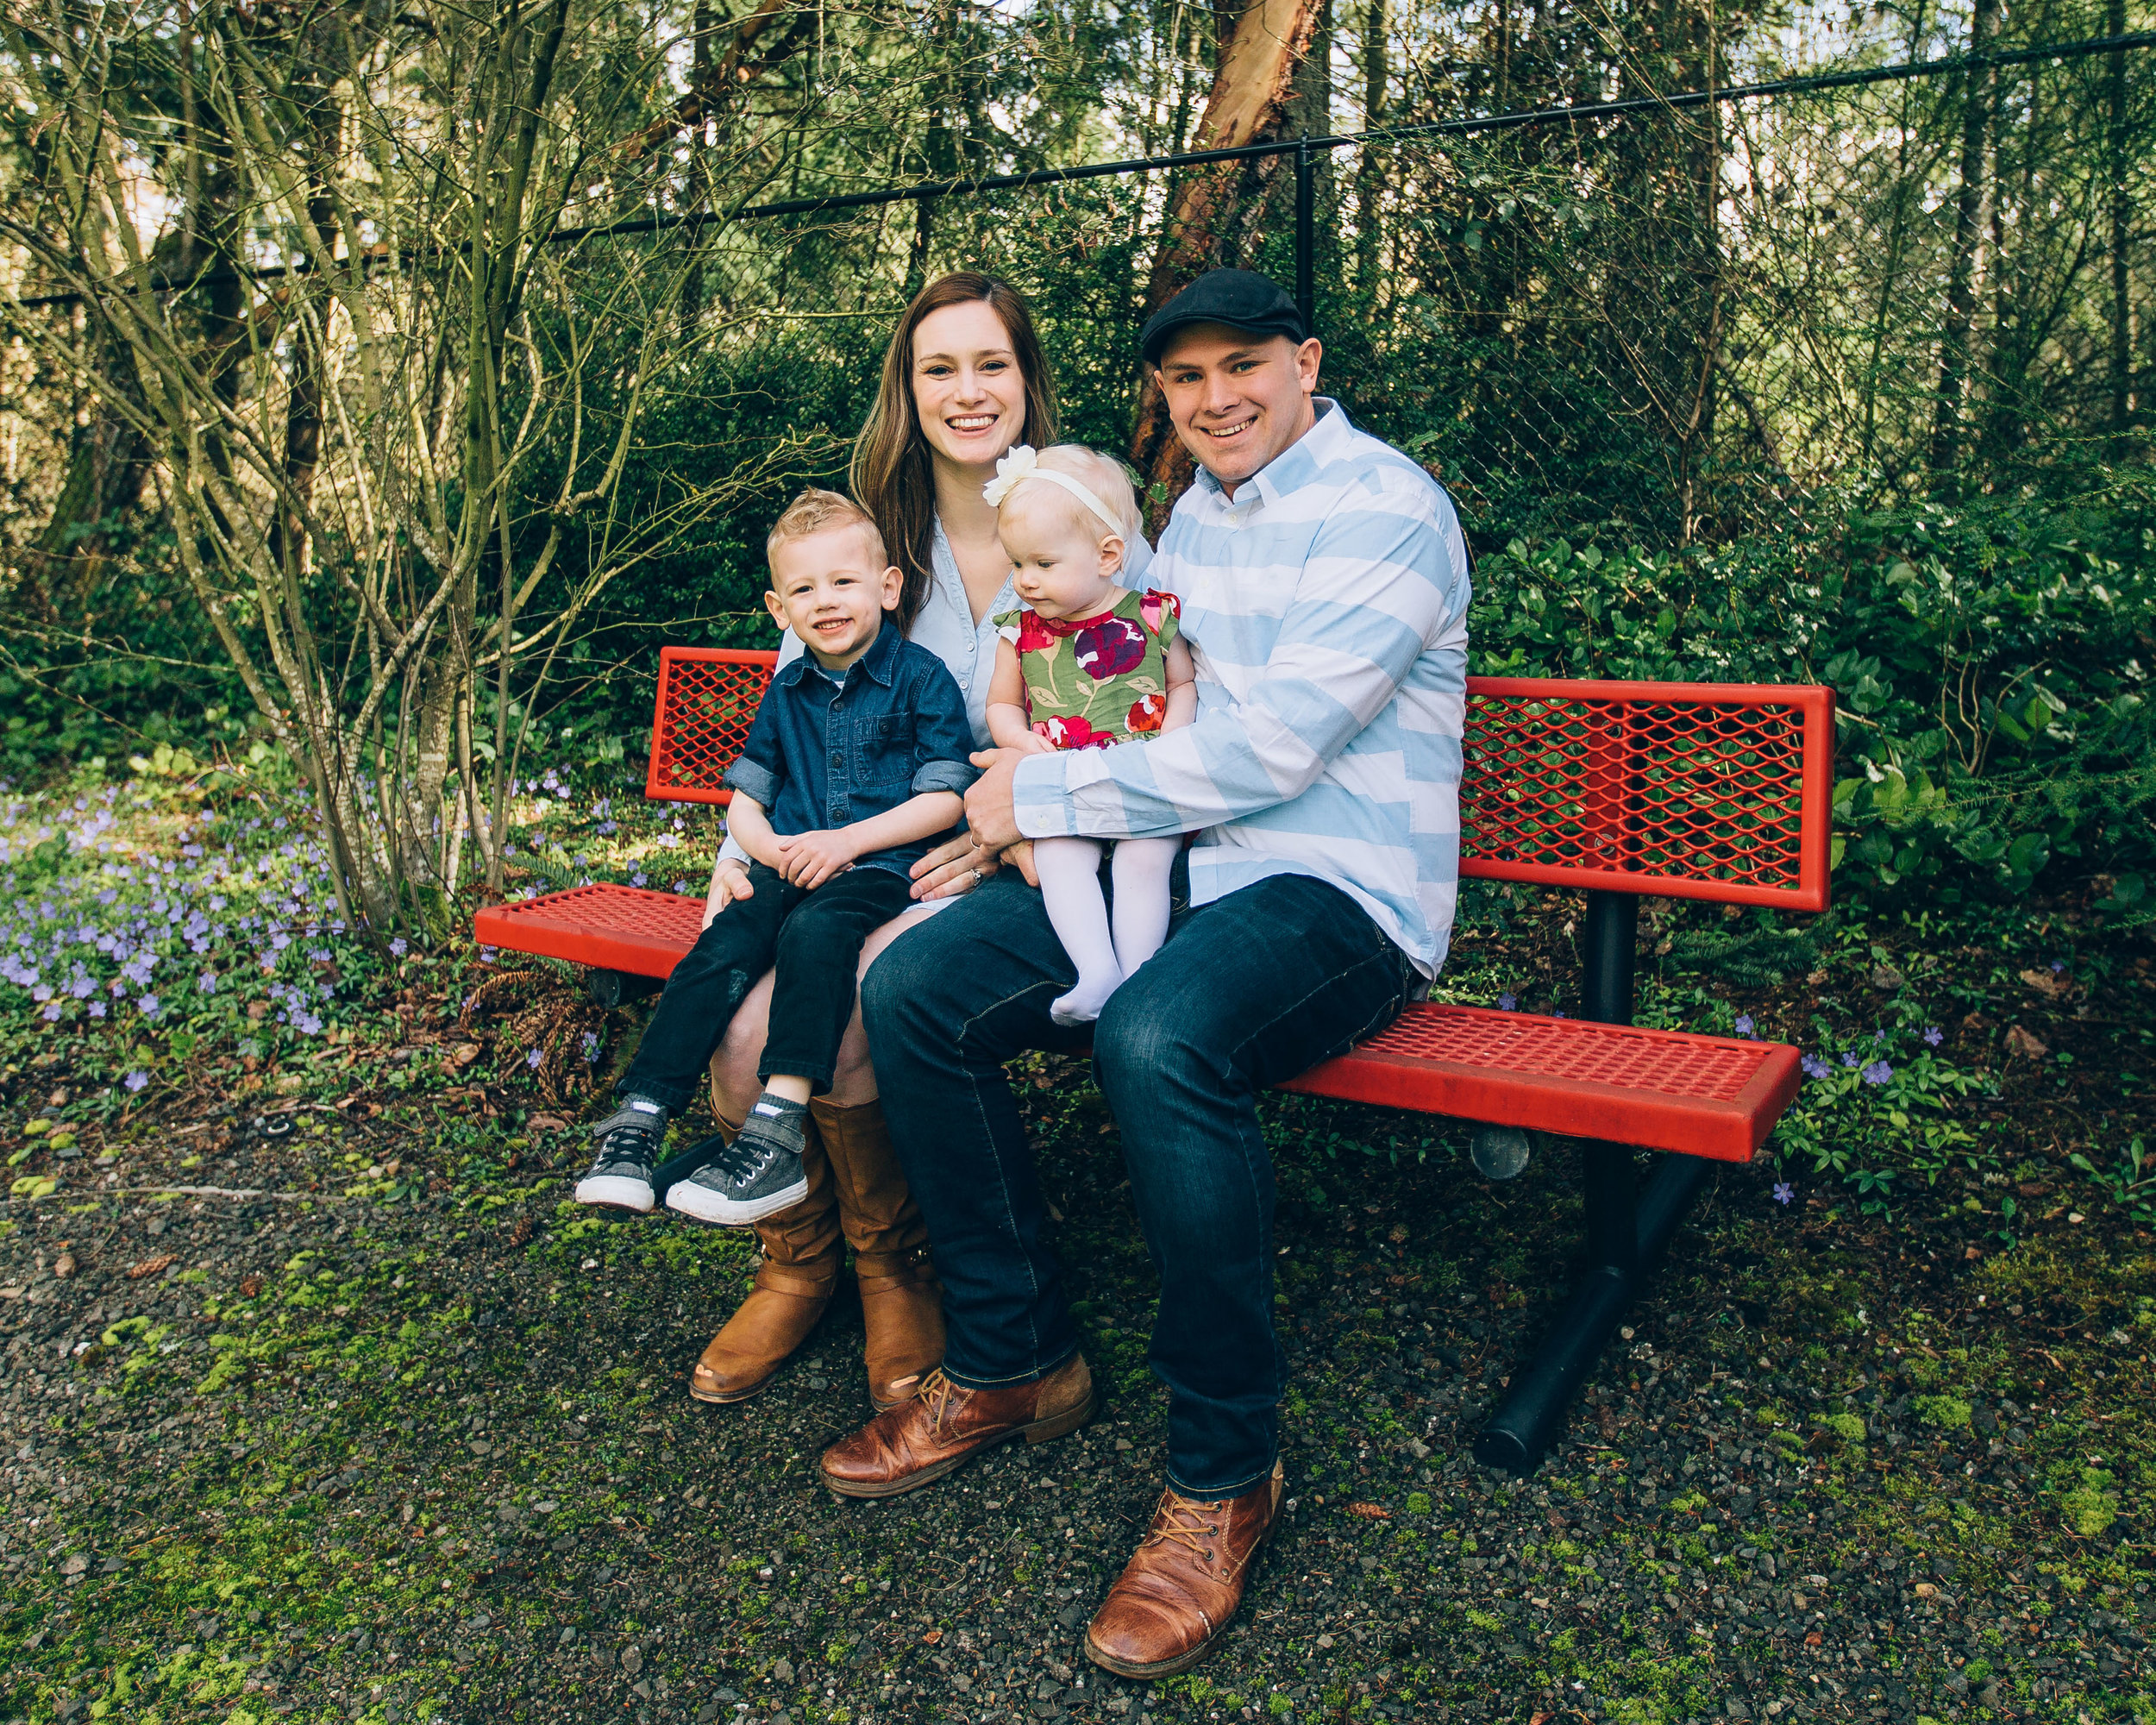 ASSOCIATE PASTOR - Danny Smith: Danny's role at Island Church is to encourage the body of Christ and be in authentic relationship with our community, so that others can let down their guard and have a tangible moment of love, value and support.